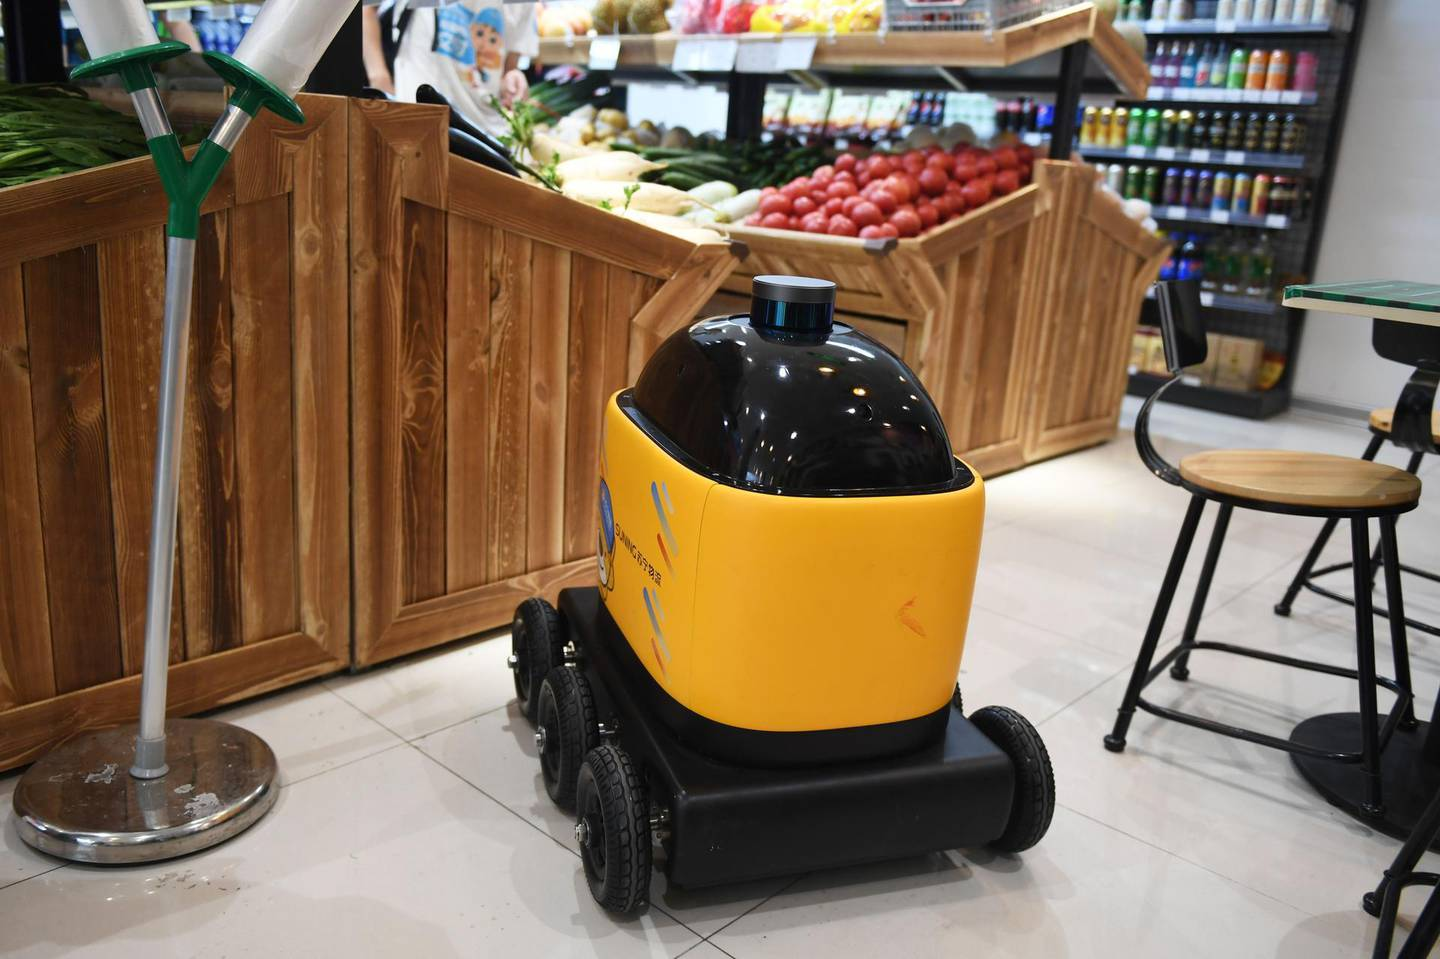 """In this photo taken on June 28, 2018, a Zhen Robotics delivery robot is seen in a Suning supermarket during a demonstration of the robot in Beijing. Along a quiet residential street on the outer edges of Beijing, a yellow and black cube about the size of a small washing machine trundles leisurely to its destination. This """"little yellow horse"""" is an autonomous delivery robot, ferrying daily essentials like drinks, fruit and snacks from the local store to the residents of the """"Kafka"""" compound in the Chinese capital.  - TO GO WITH AFP STORY CHINA-TECHNOLOGY-ROBOTS-CONSUMER-SCIENCE,FEATURE BY LUDOVIC EHRET  / AFP / GREG BAKER / TO GO WITH AFP STORY CHINA-TECHNOLOGY-ROBOTS-CONSUMER-SCIENCE,FEATURE BY LUDOVIC EHRET"""